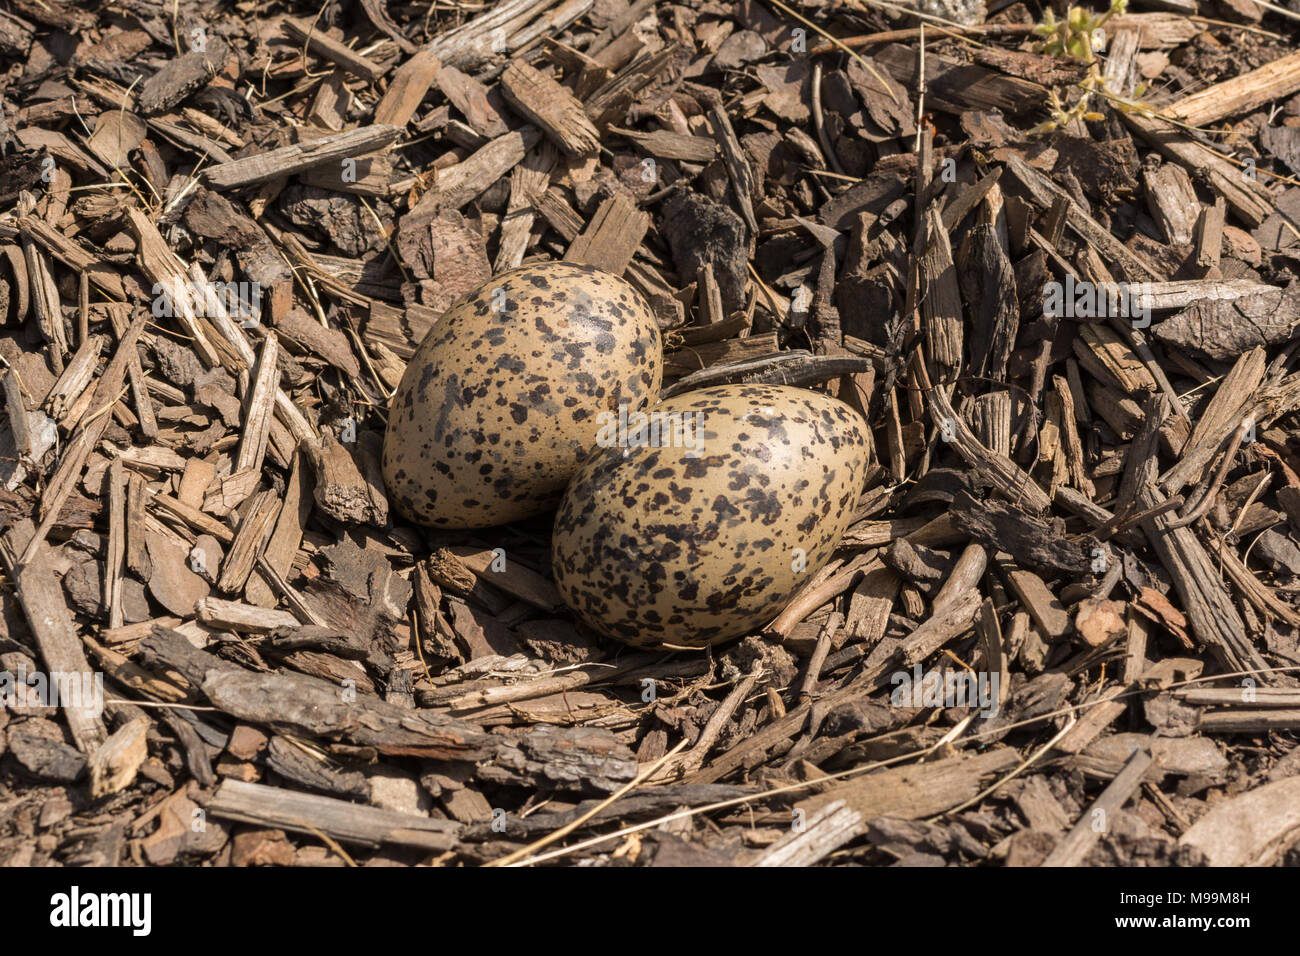 lapwing - vanellus vanellus - eggs in hollowed out nest in bark chippings in Glengoyne Distillery car park, Scotland, UK  see images M99M8J and ET8K2M - Stock Image